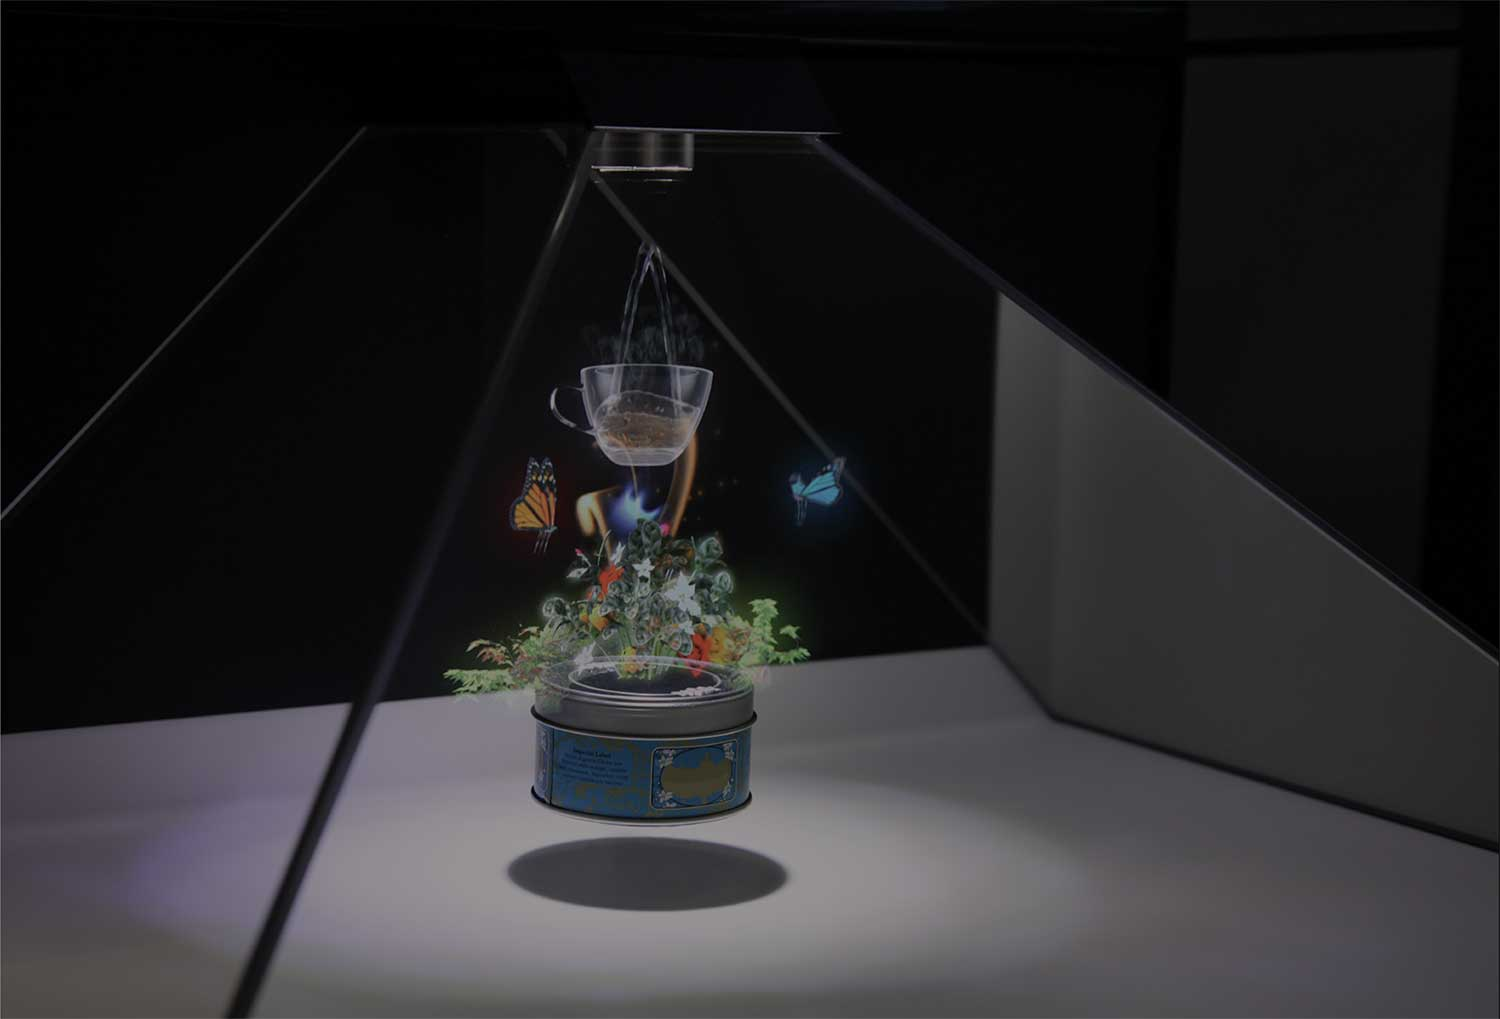 3D holographic content for hologram display